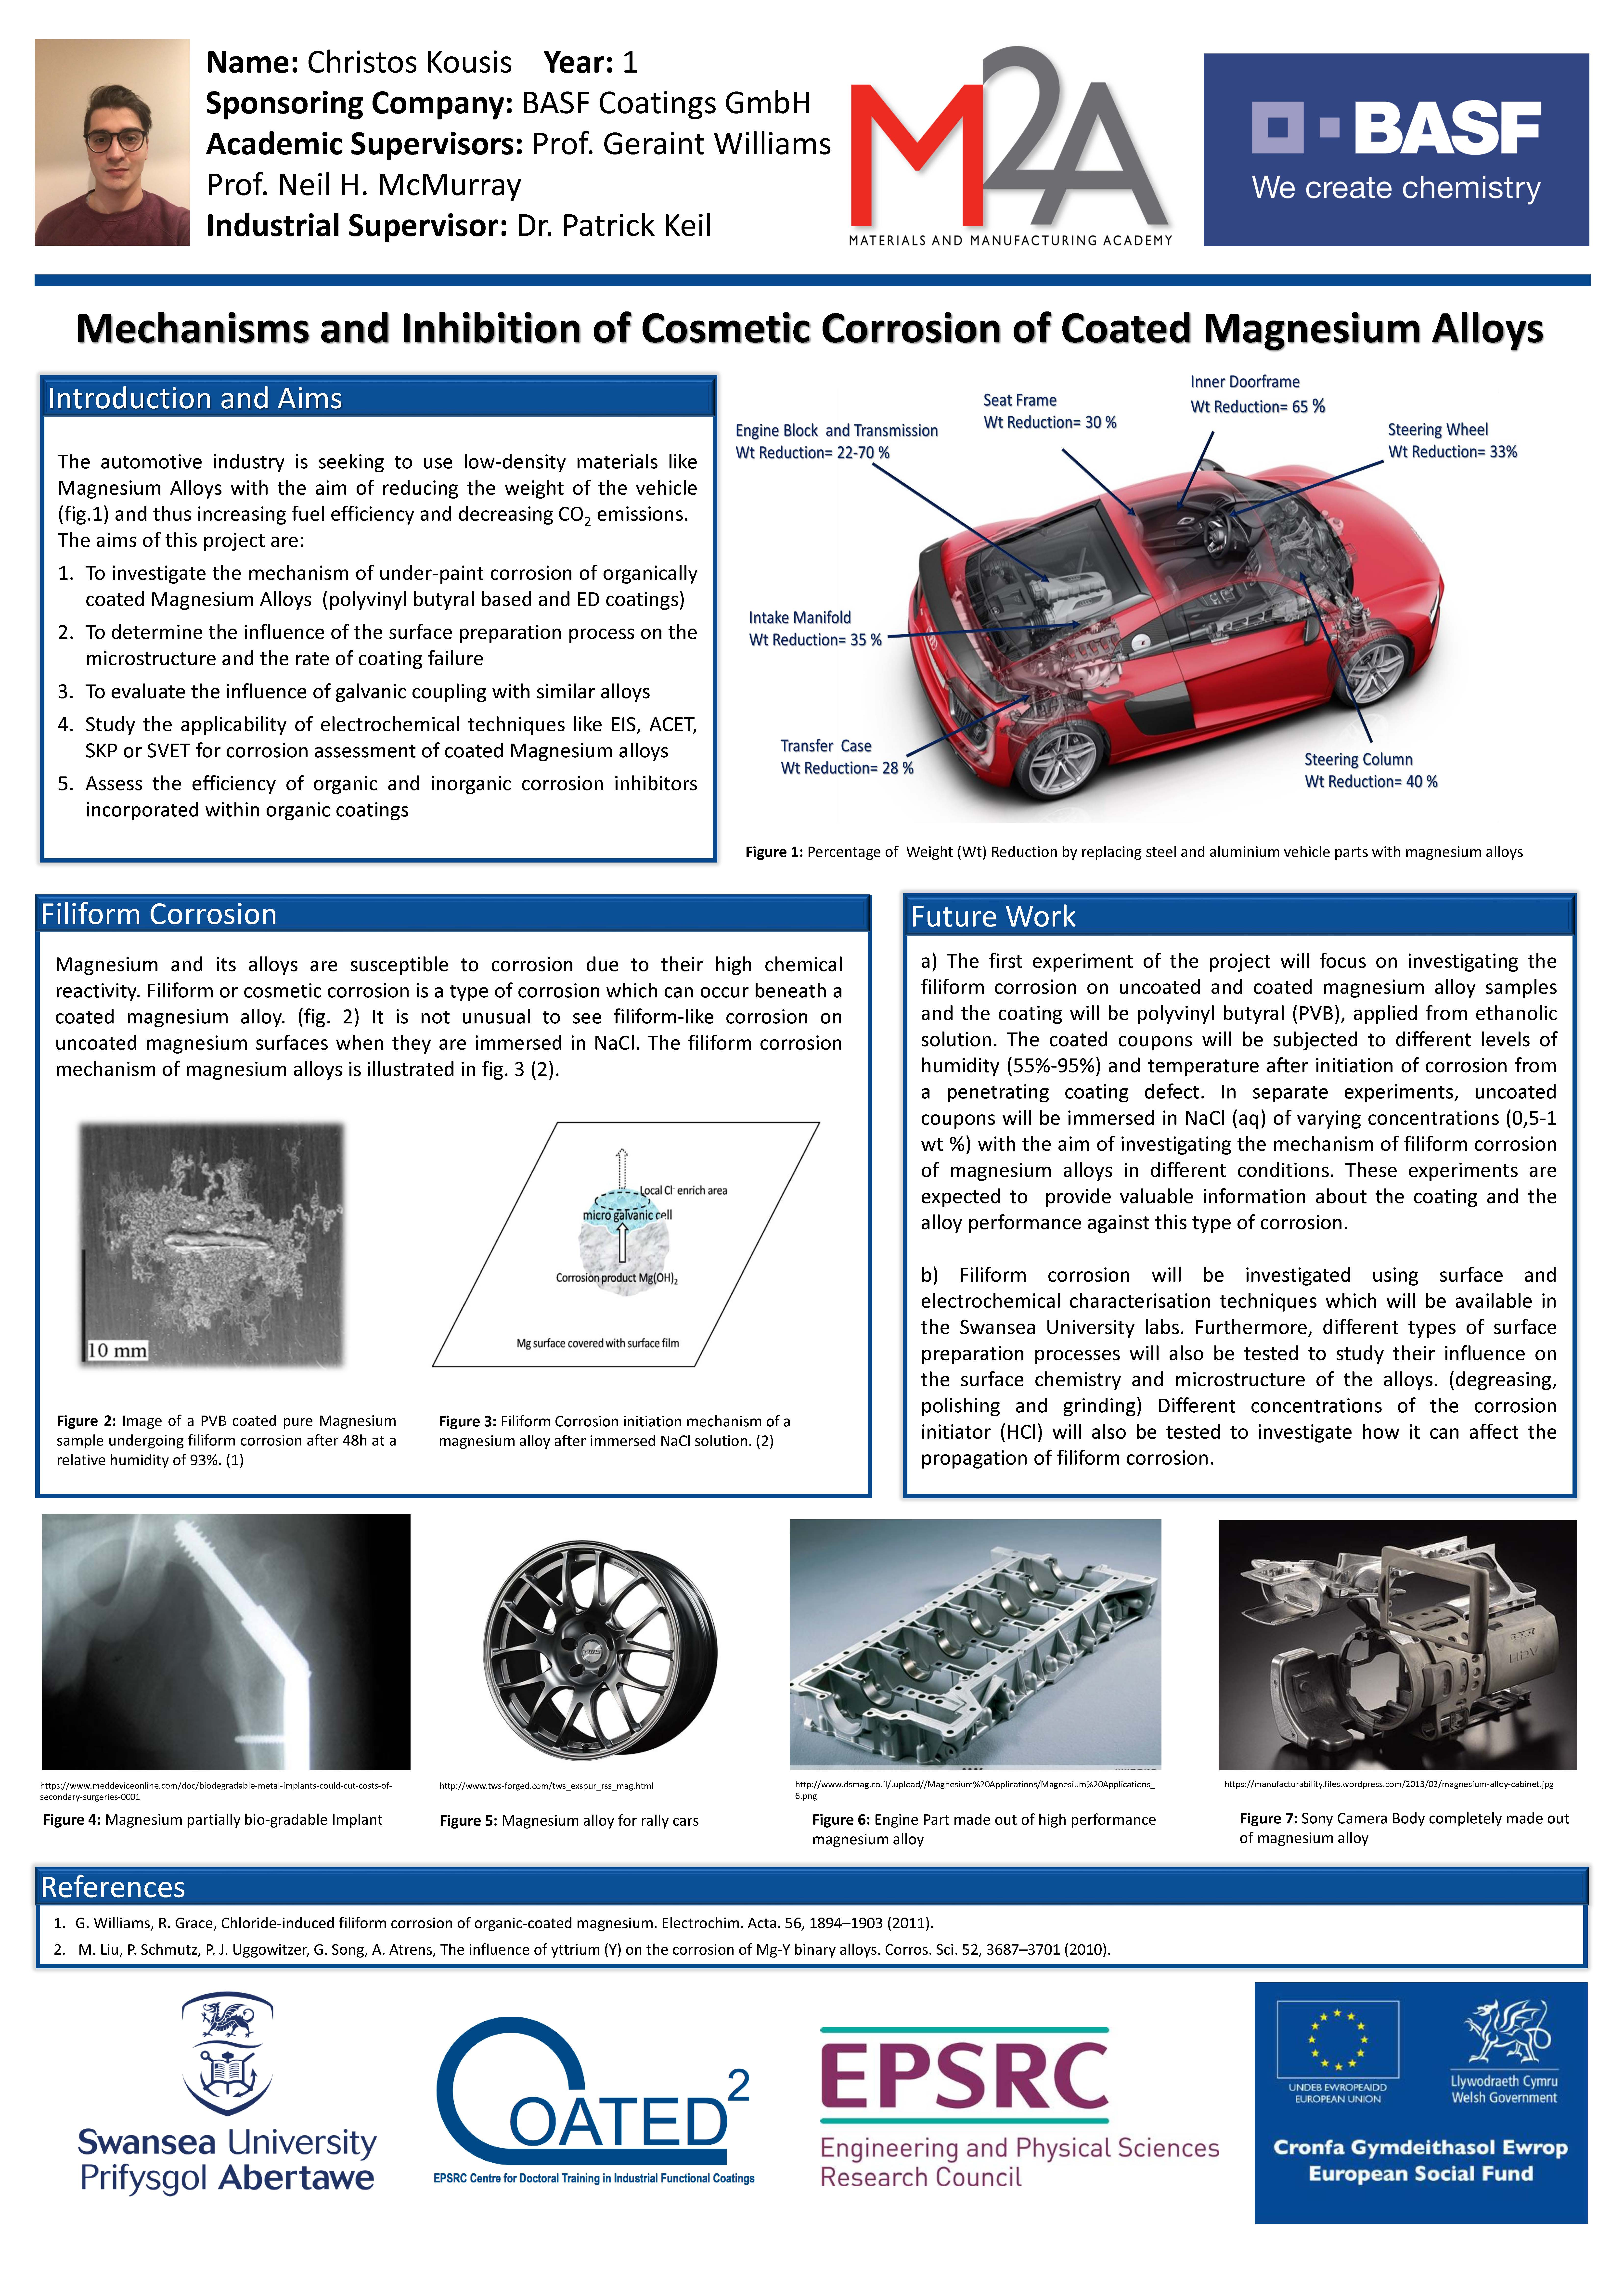 Mechanisms and Inhibition of Cosmetic Corrosion of Coated Magnesium Alloys